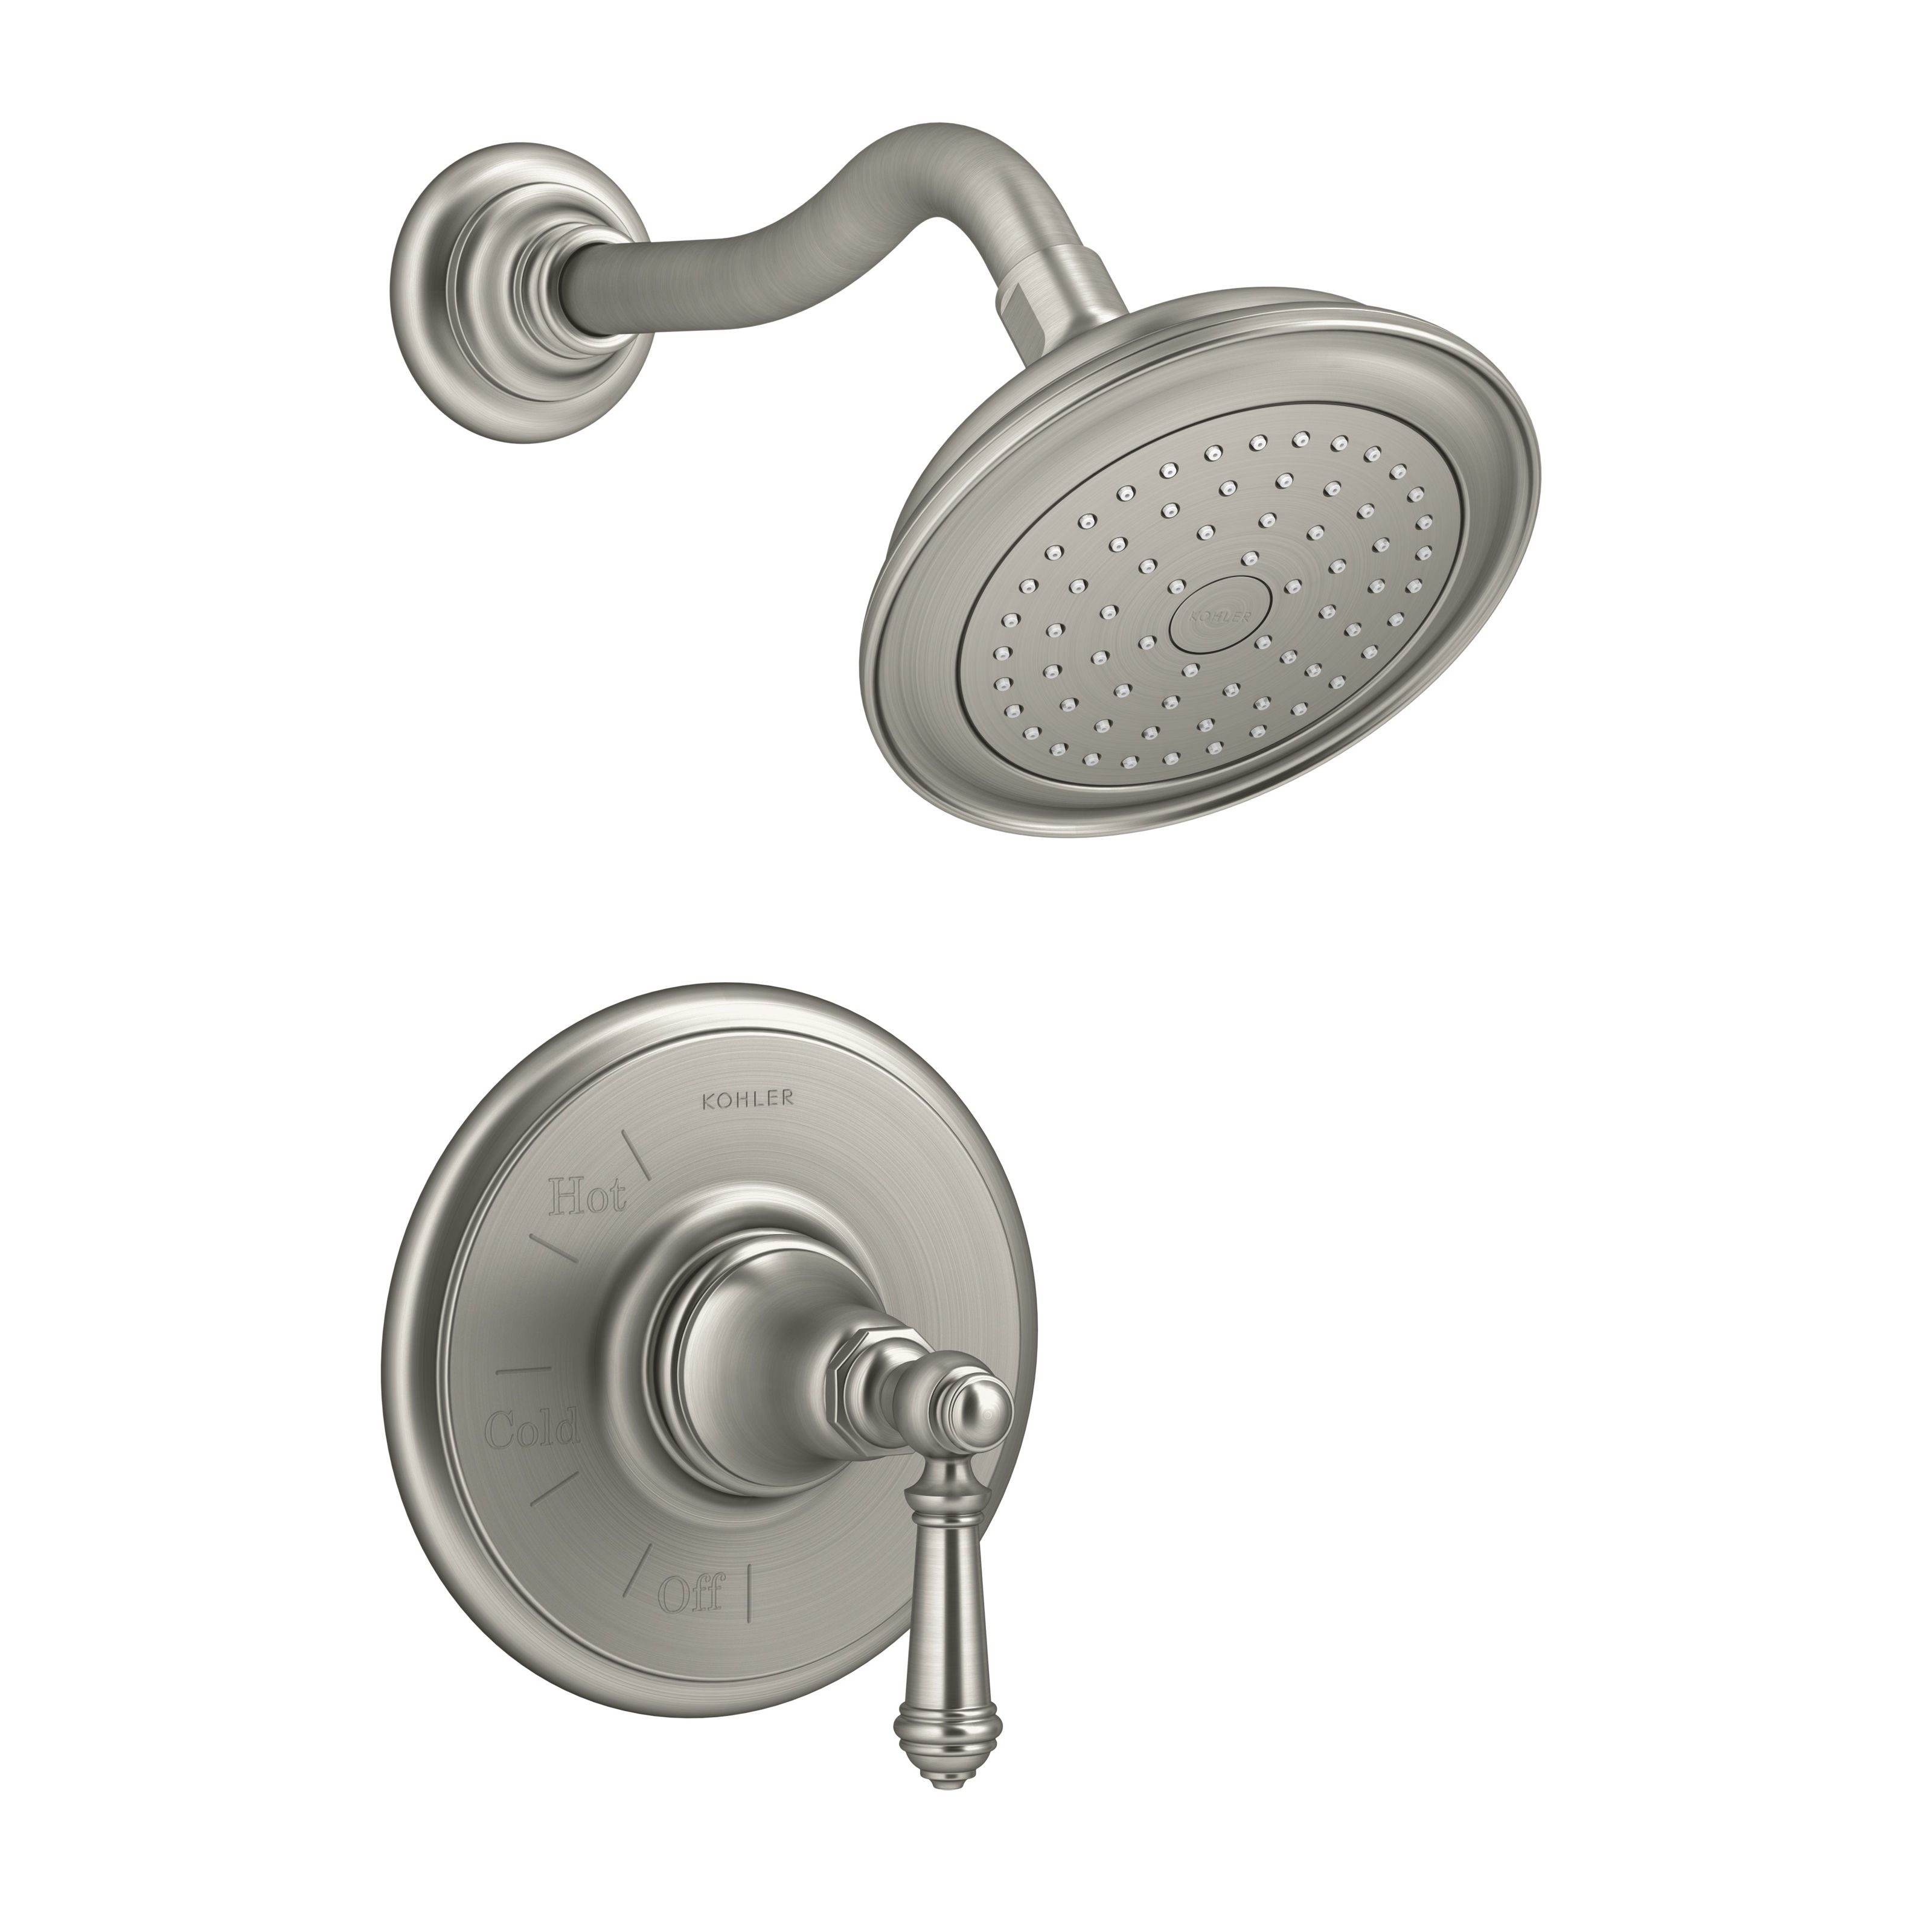 Charmant Kohler K T72767 4 SHOWER SN Vibrant Polished Nickel Artifacts Shower Trim  Package With Single Function Rain Shower Head And Katalyst Technology    Faucet.com